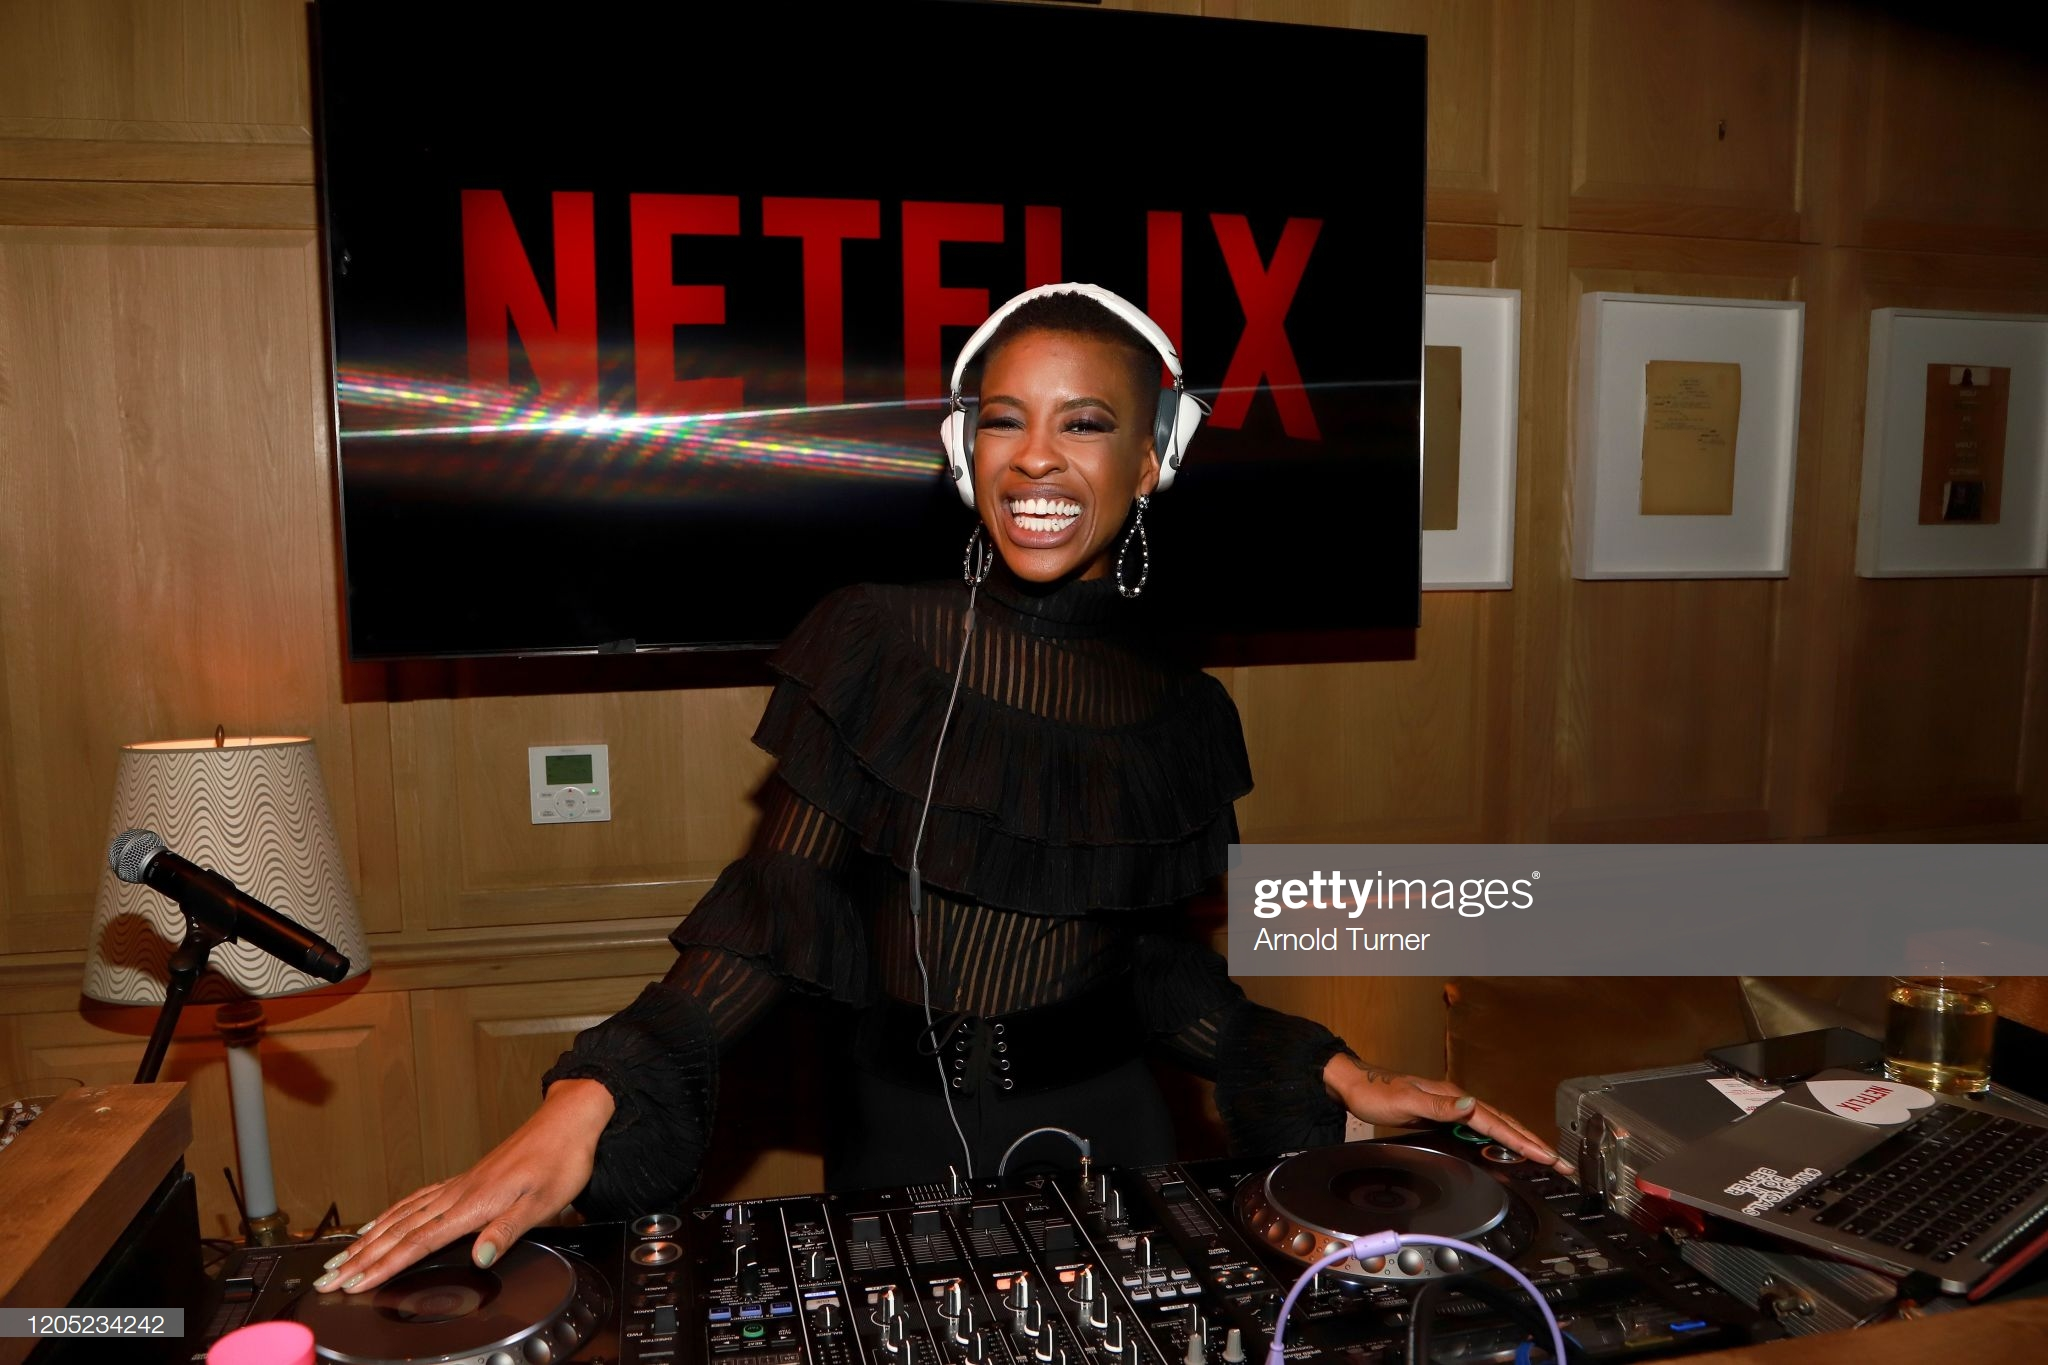 Netflix Oscars 2020_gettyimages-12052342